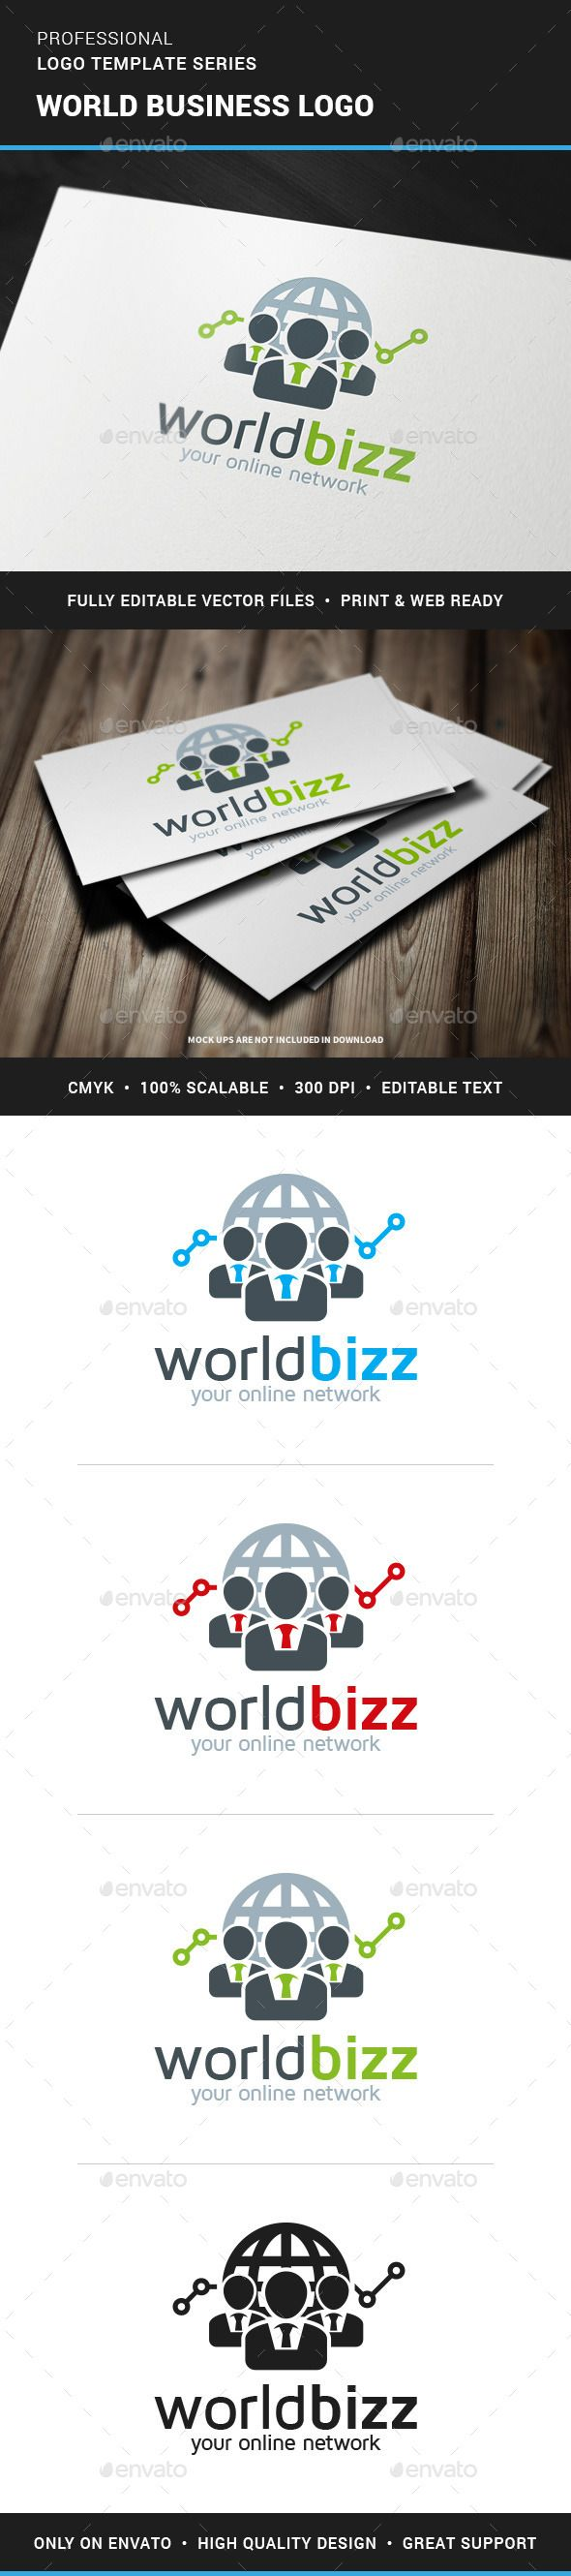 World Business Logo Template — Transparent PNG #stats #men • Available here → https://graphicriver.net/item/world-business-logo-template/11937562?ref=pxcr